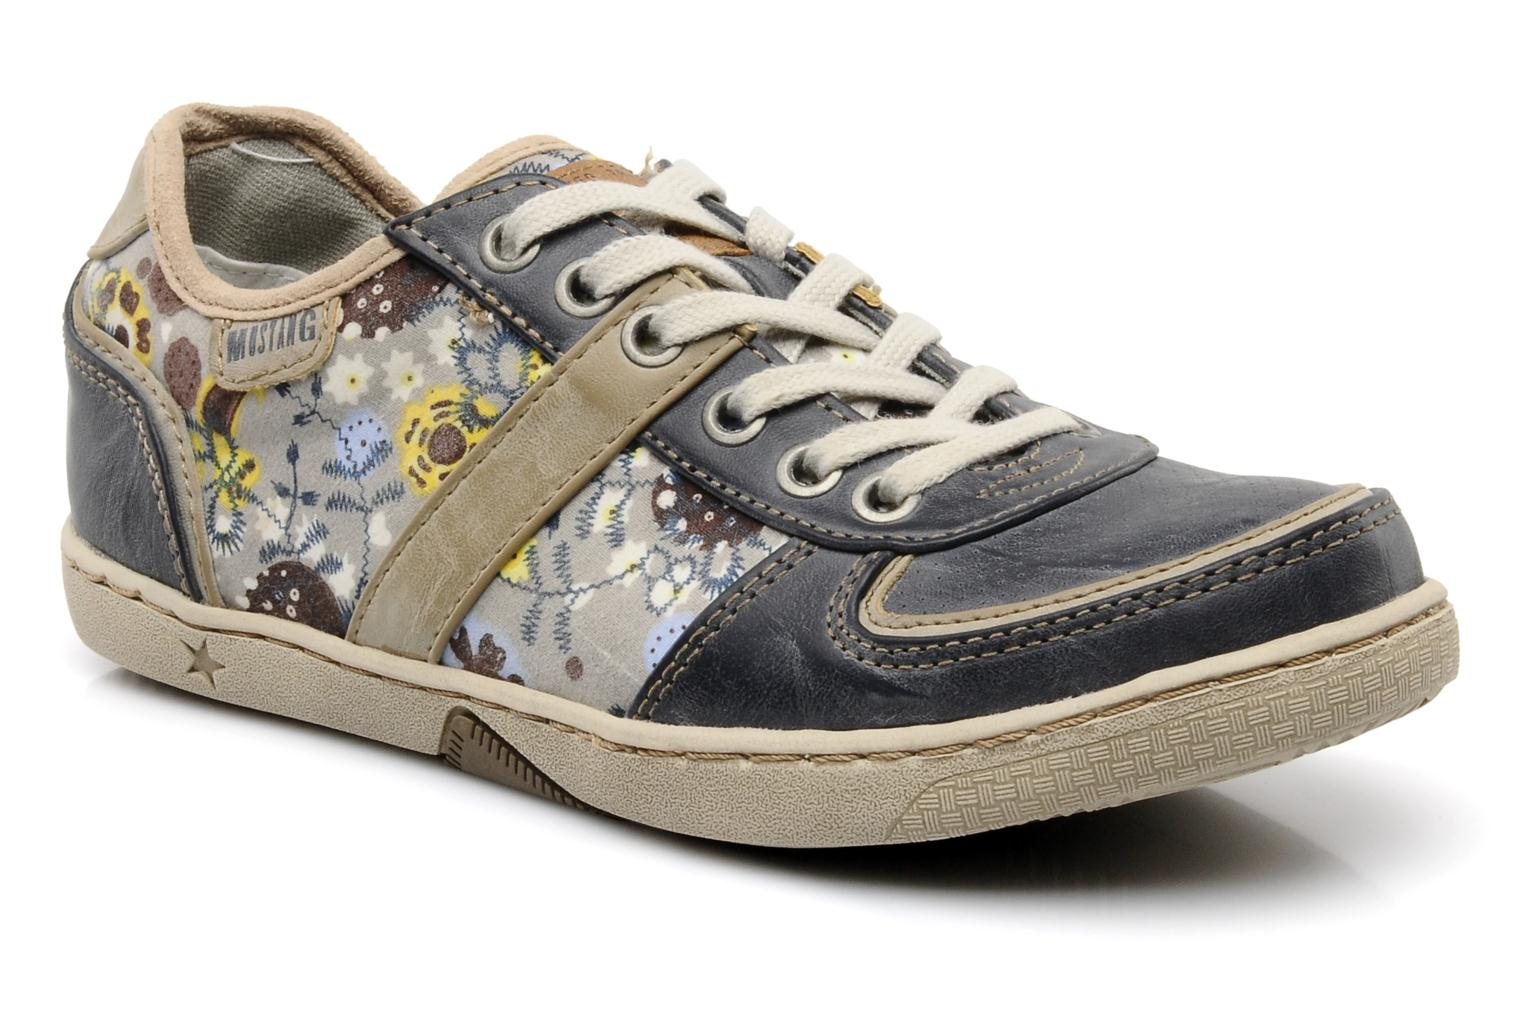 Sneakers Poky by Mustang shoes